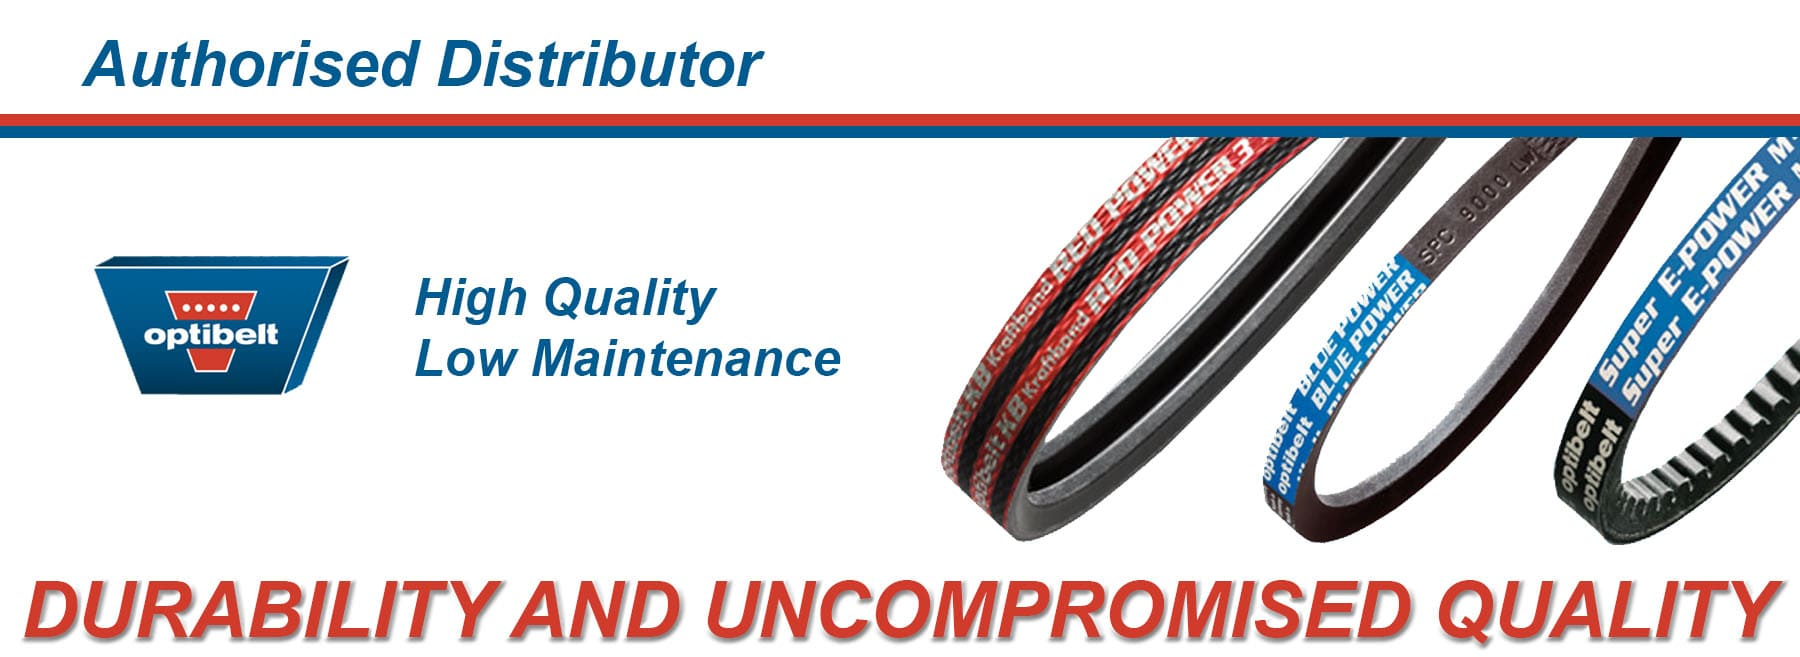 Optibelt - Authorised Distributor - Durability and uncompromised quality